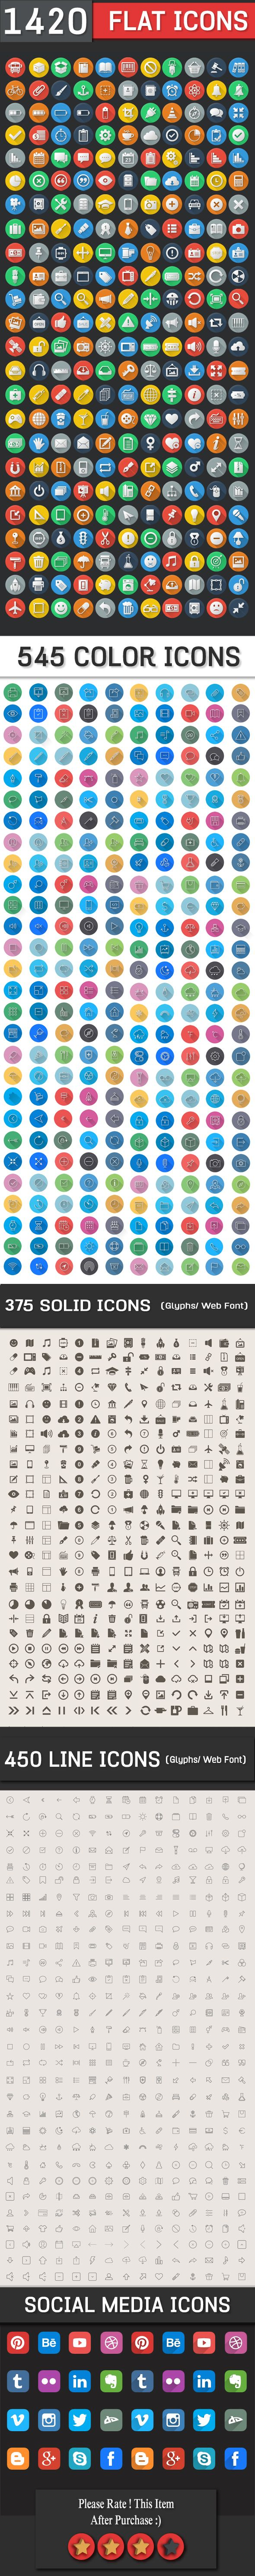 1420 Flat Icons - Colorful Icons Set   DailyDesignMag on the Wacom Gallery  http://gum.co/ddm9